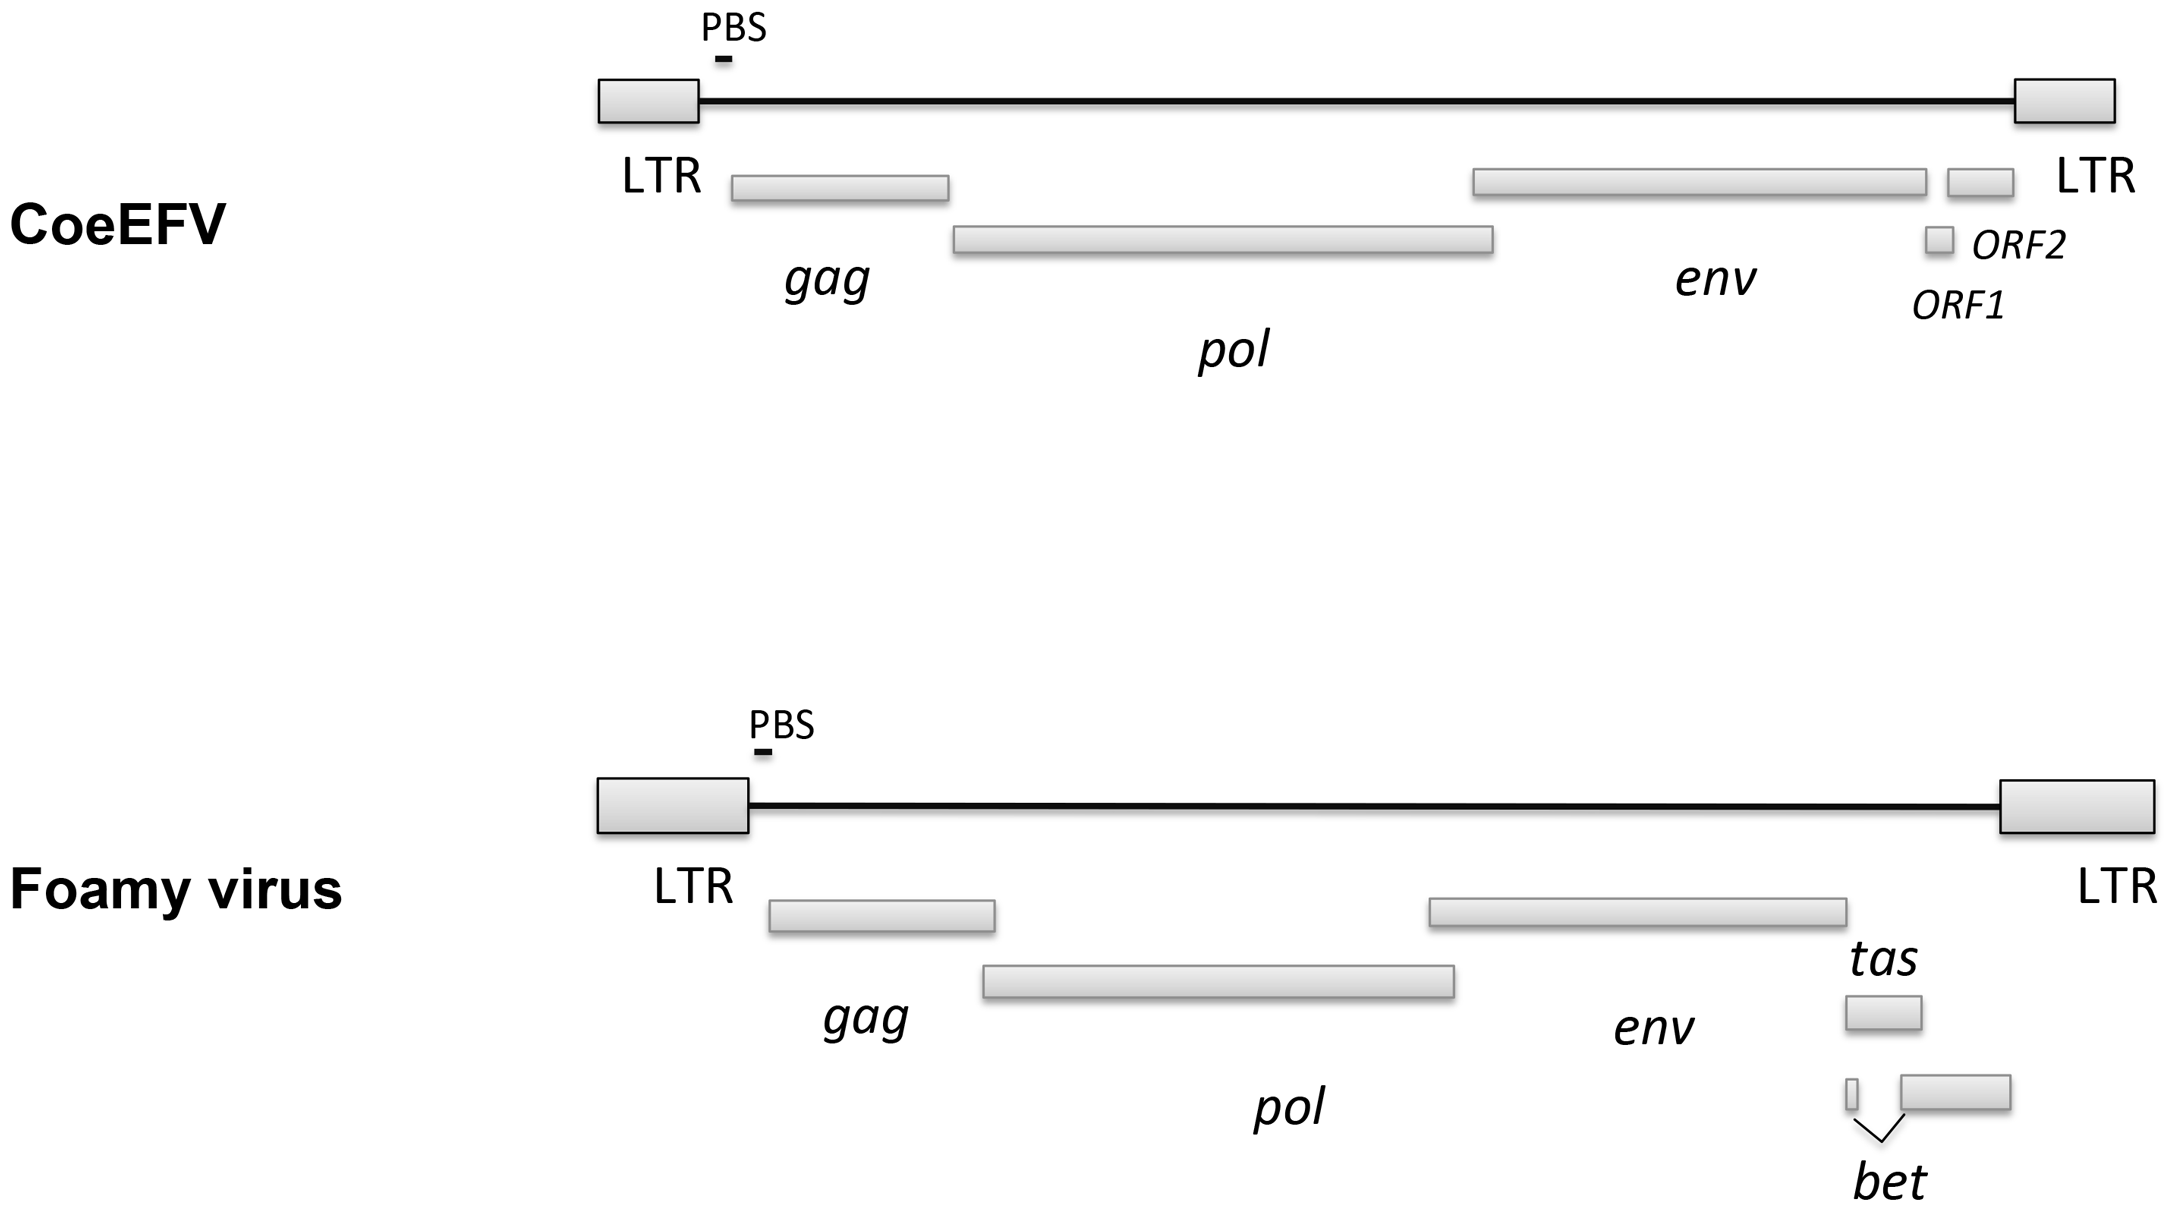 Comparison of the genome structures between CoeEFV and typical exogenous foamy virus.